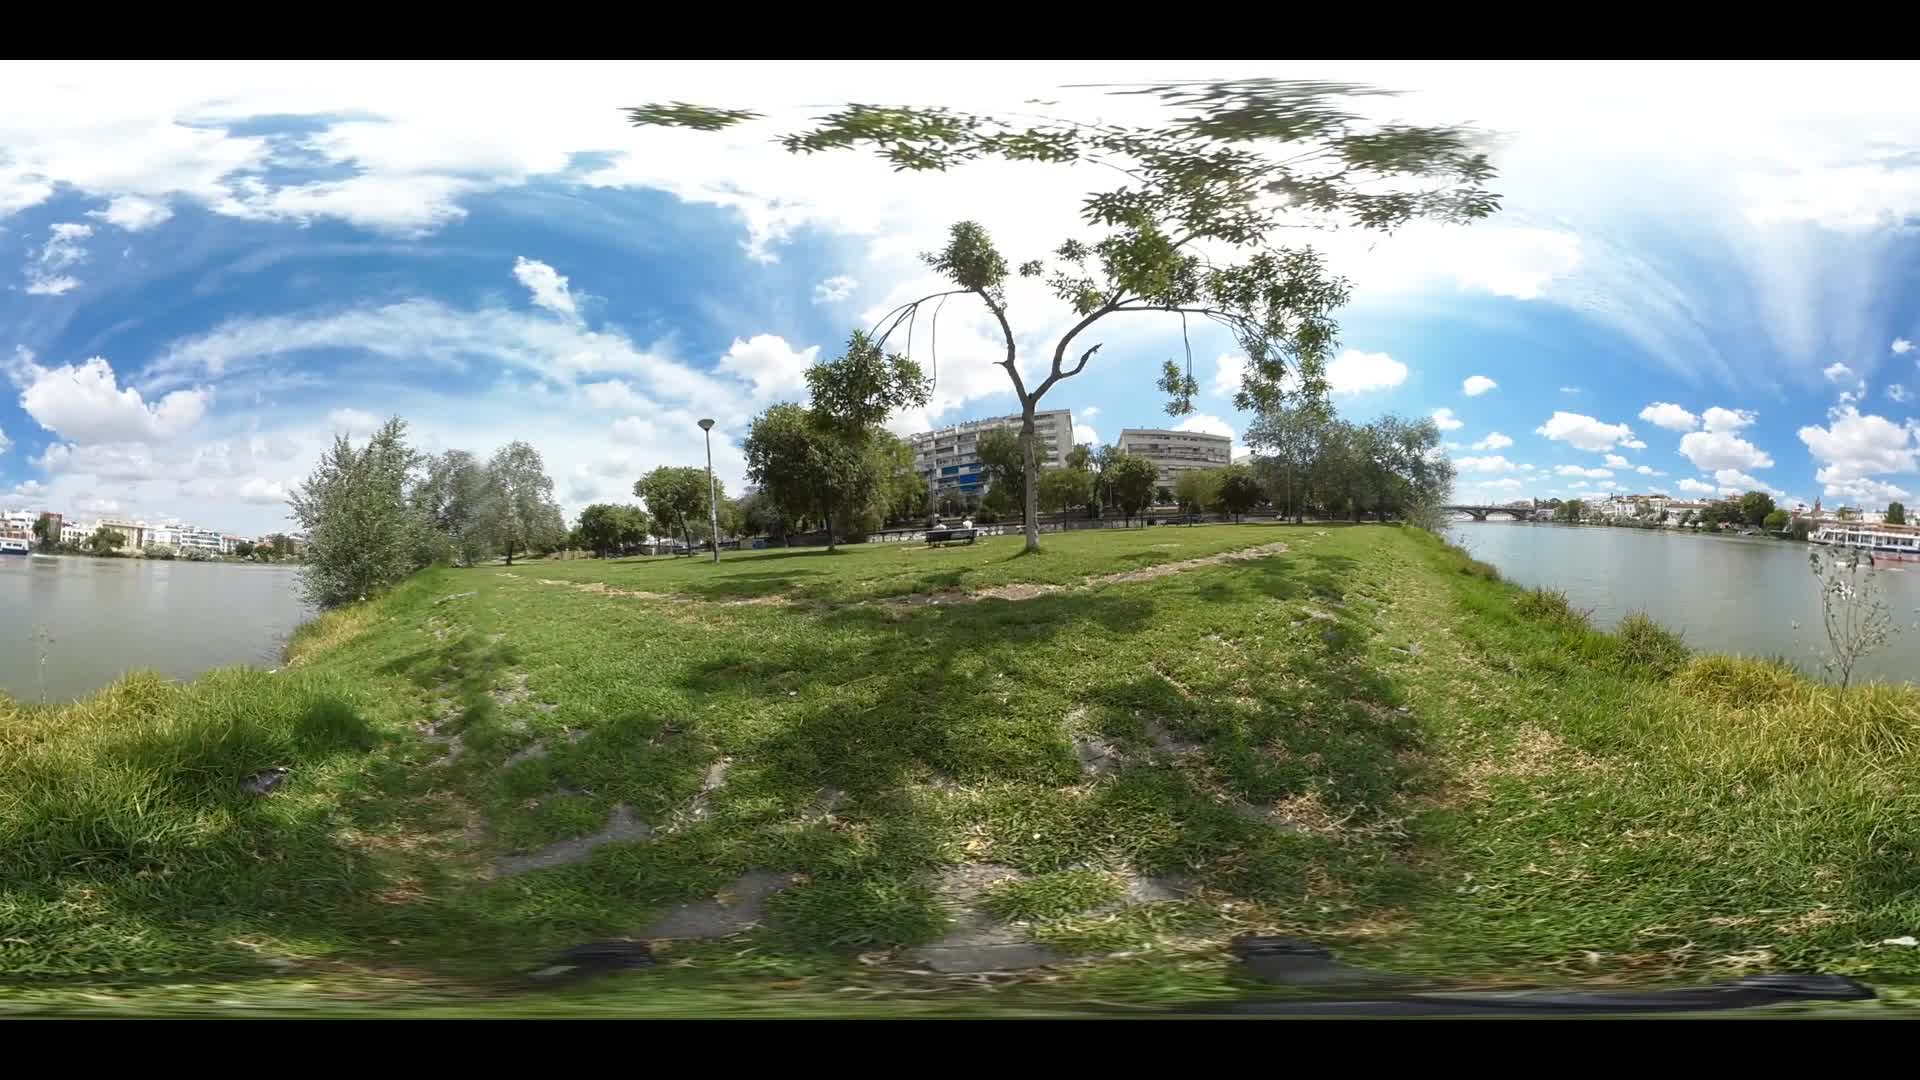 Virtual Reality 360 view from the Canal de Alfonso XIII in Seville Spain